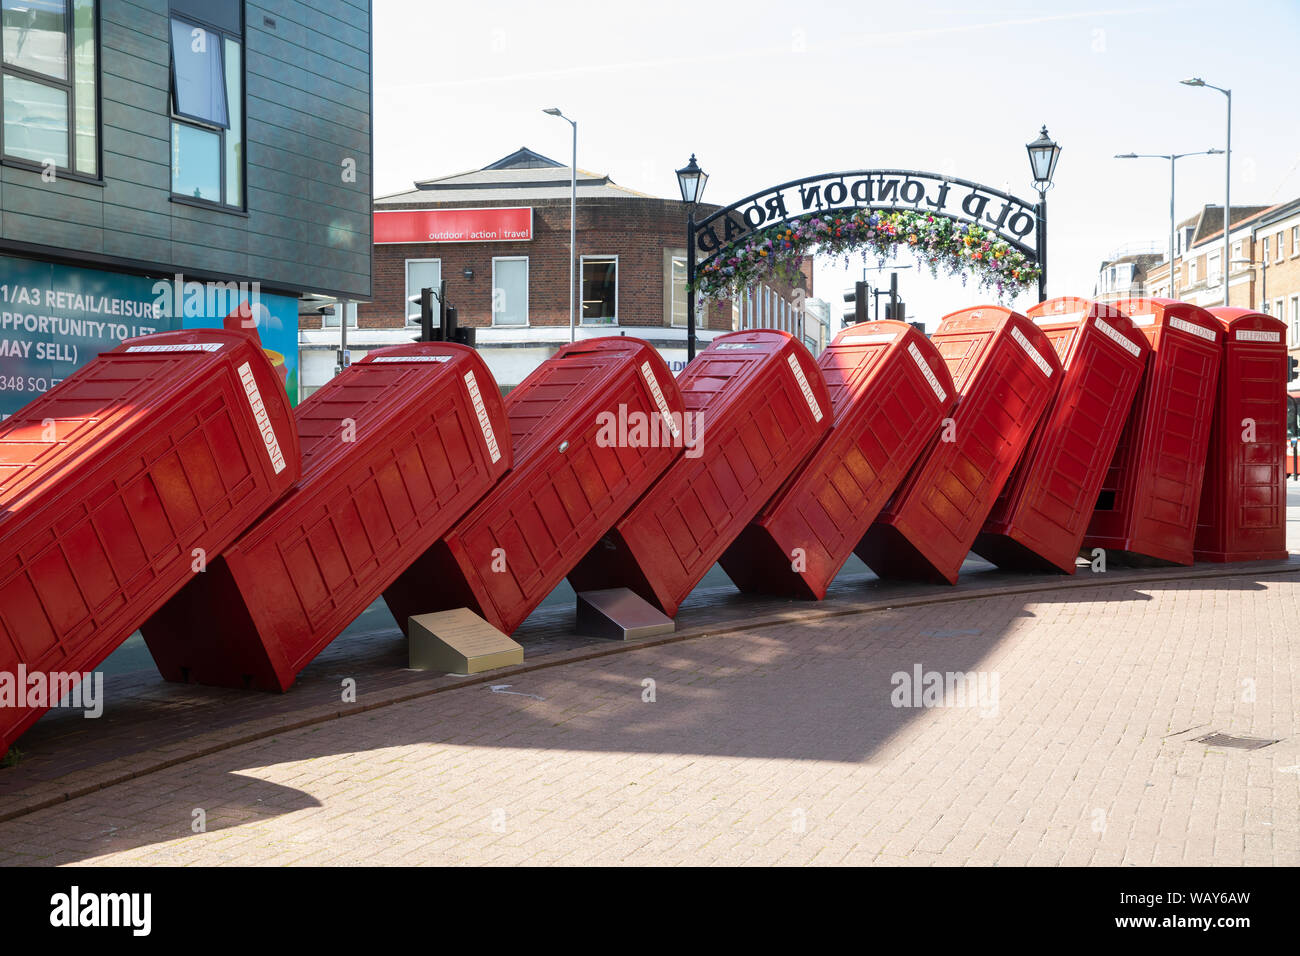 12 telephone boxes toppled over like dominoes is symbolic of Kingston Upon Thames, Surrey. Out of Order, by David Mach, arrived in 1989. Stock Photo